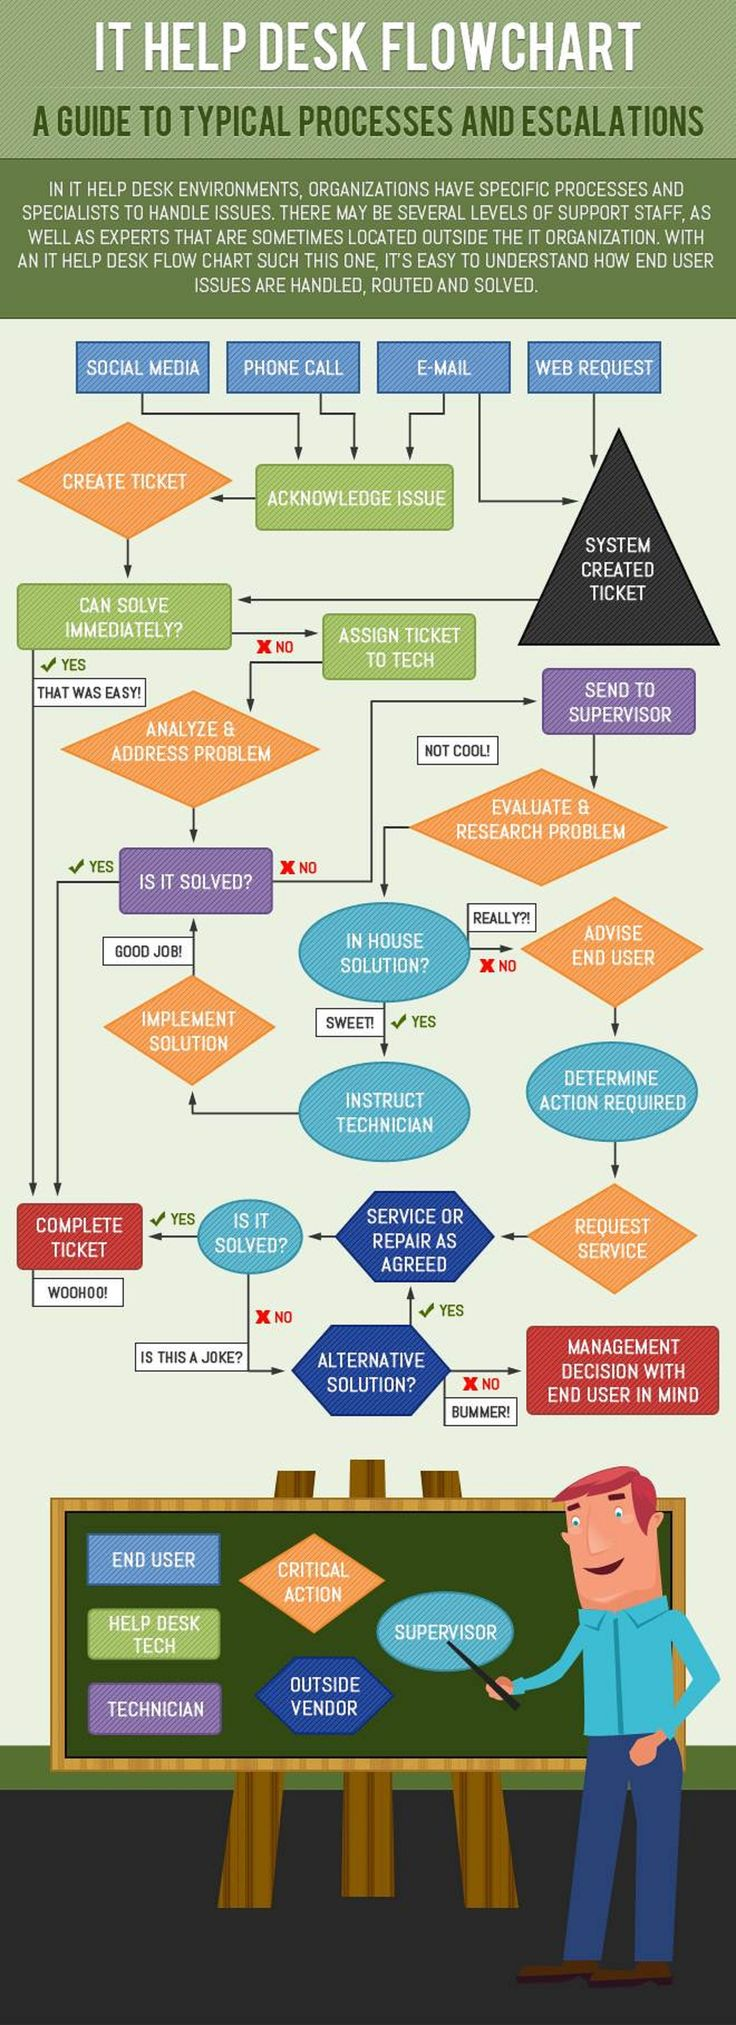 IT Help Desk Flowchart - A Guide To Typical Processes and Escalations | Infographic